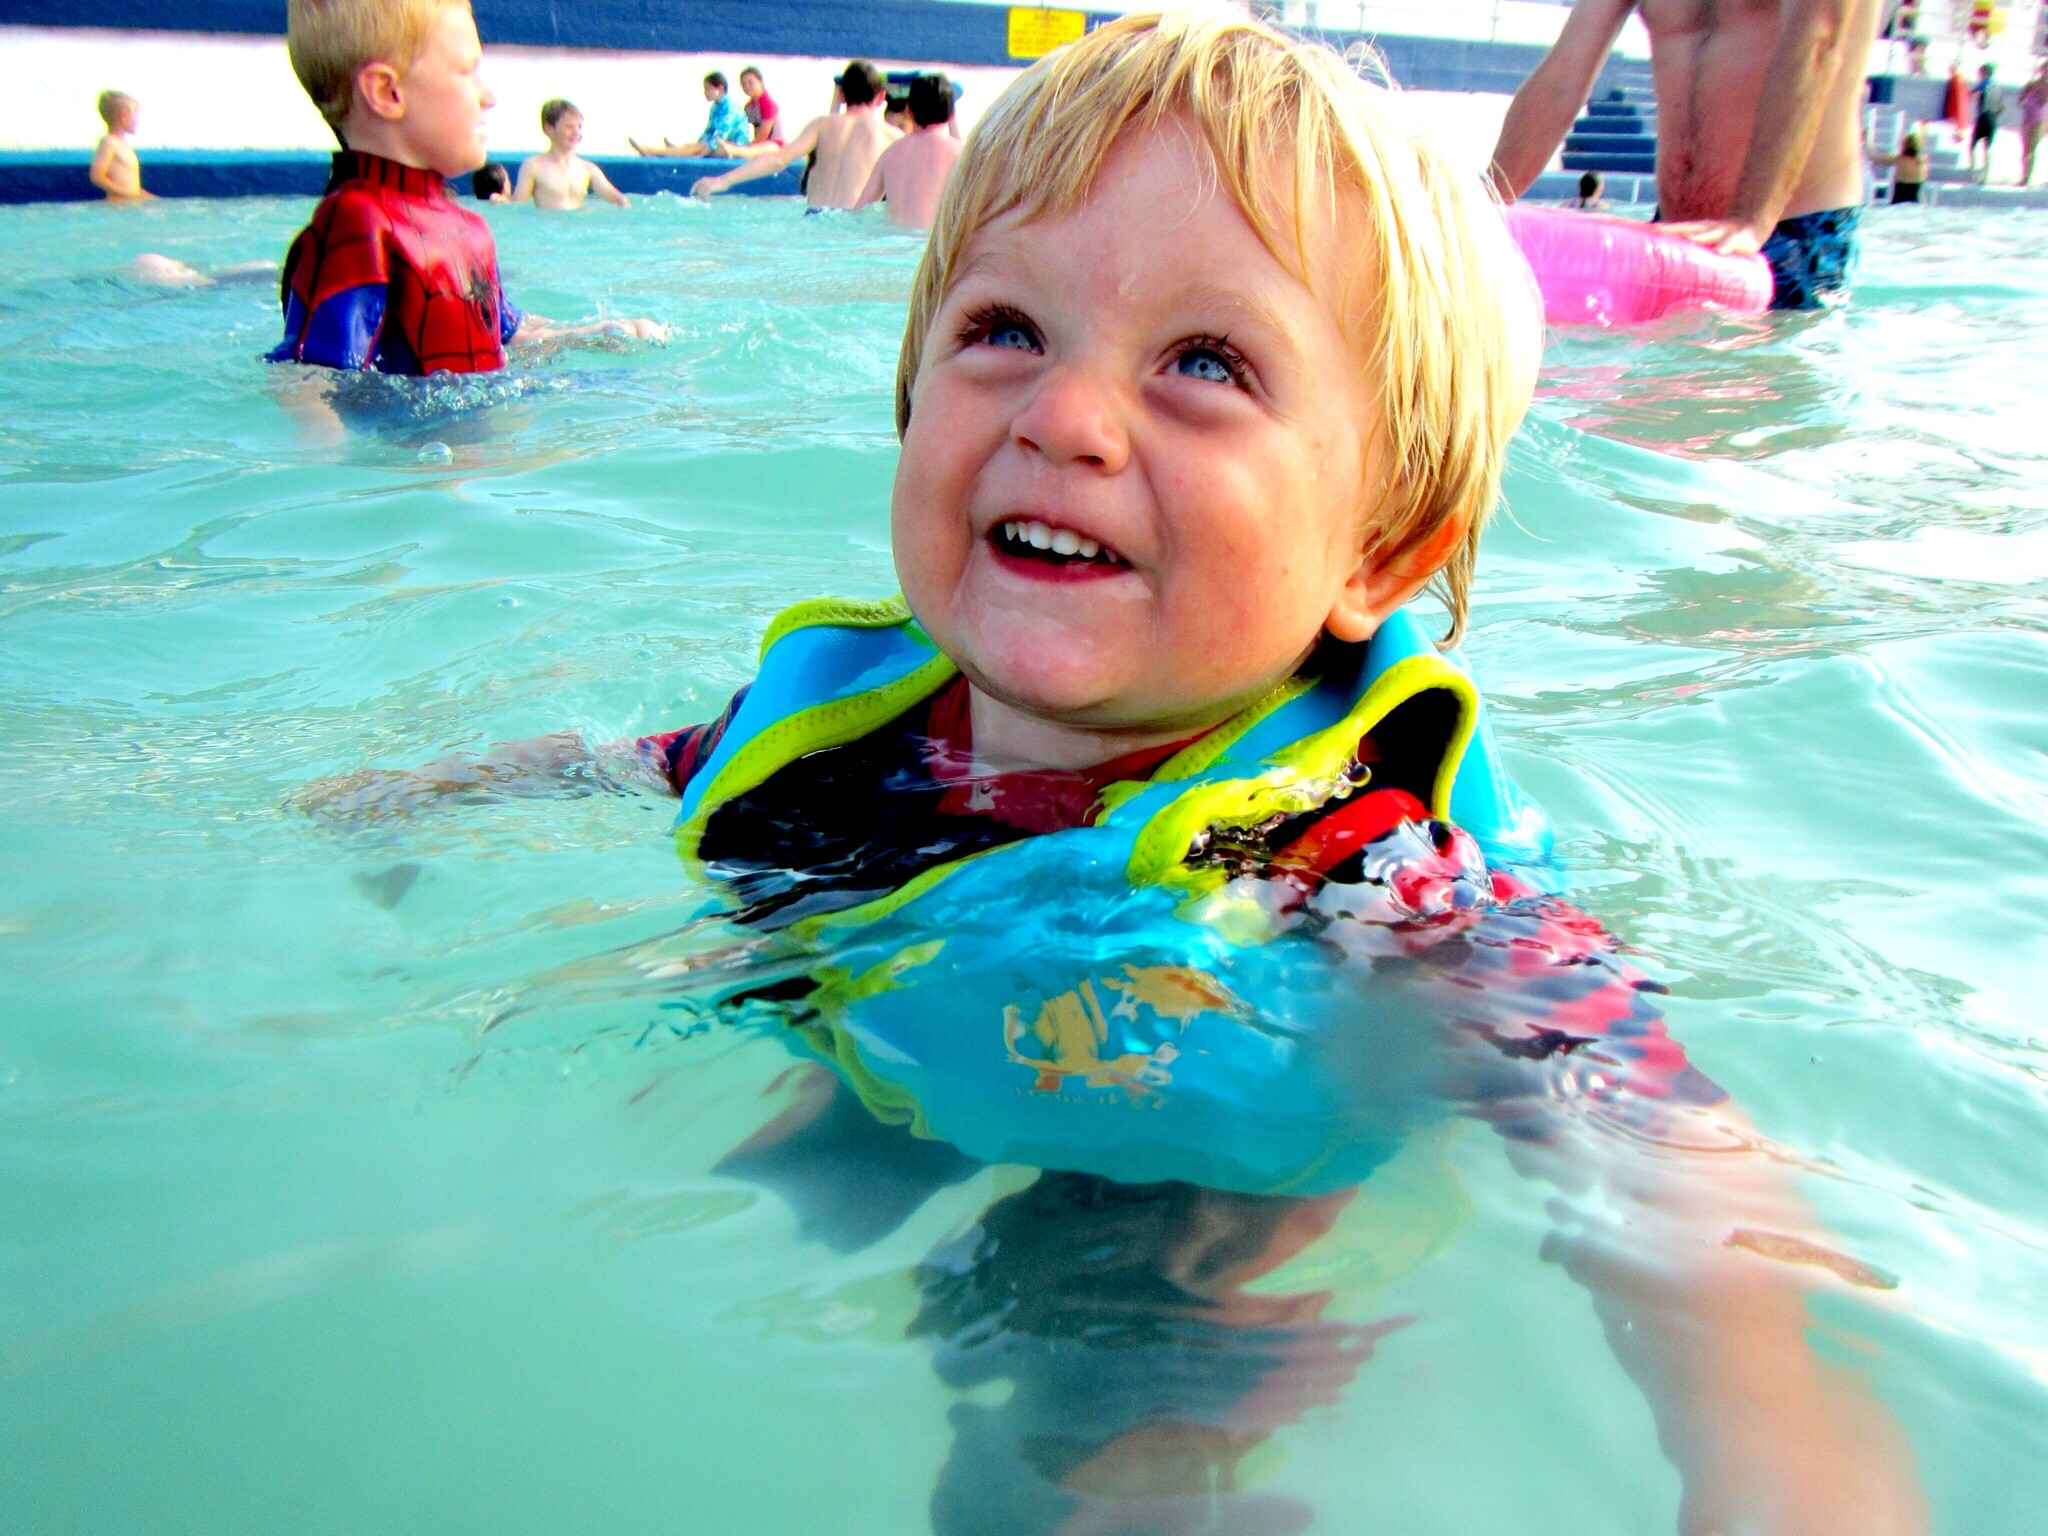 It's been fantastic to see the pool so busy over the summer holidays – kids  learning to swim or splashing about under the watchful eyes of the  lifeguards, …